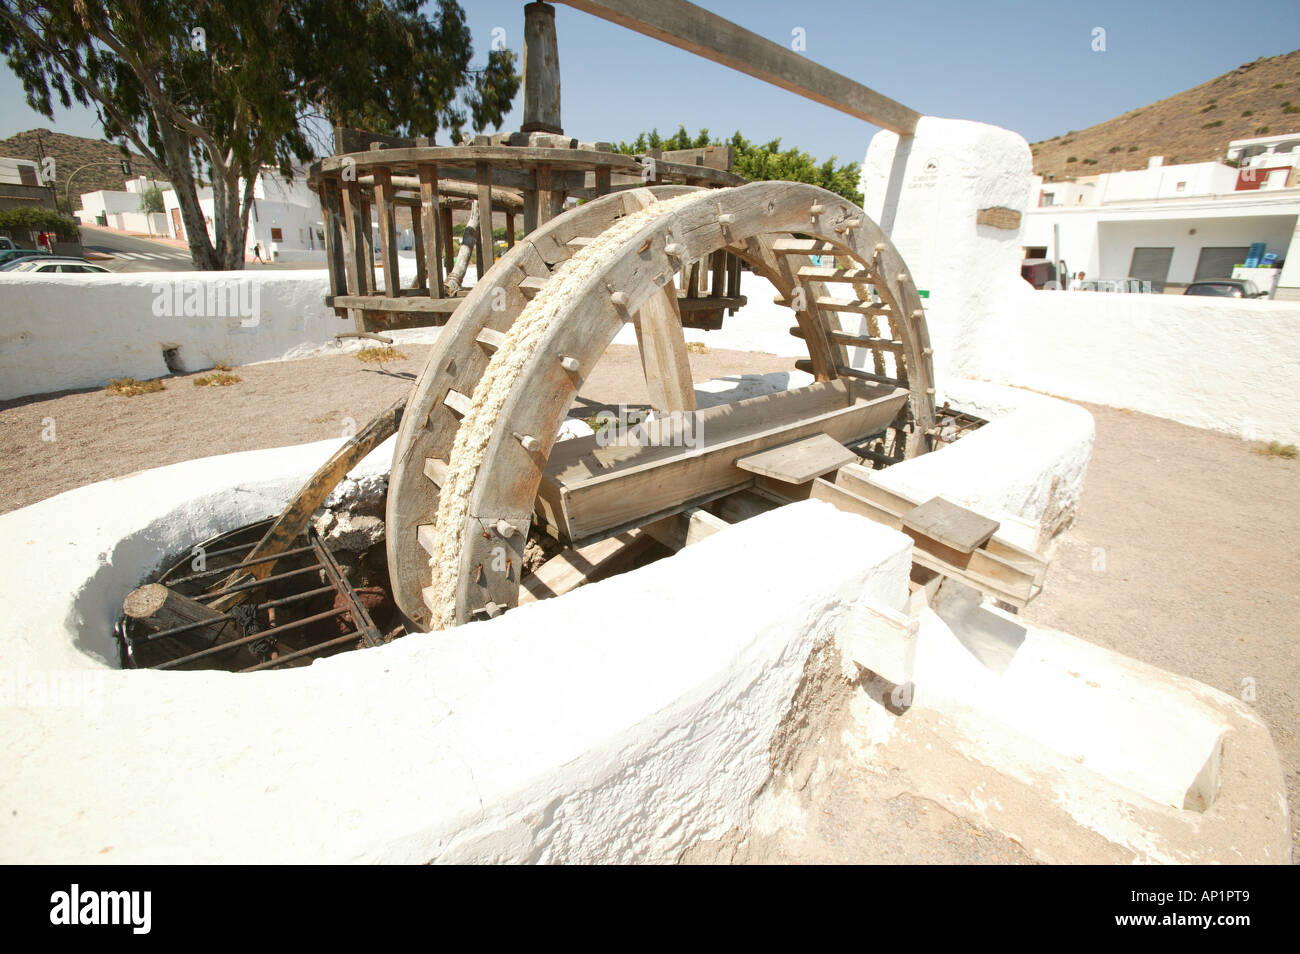 waterwheel in tow of Almería, Andalusia, Spain, house, Spain, Almeria, Europe, colors, white and blue, arquitecture, typical, cu - Stock Image